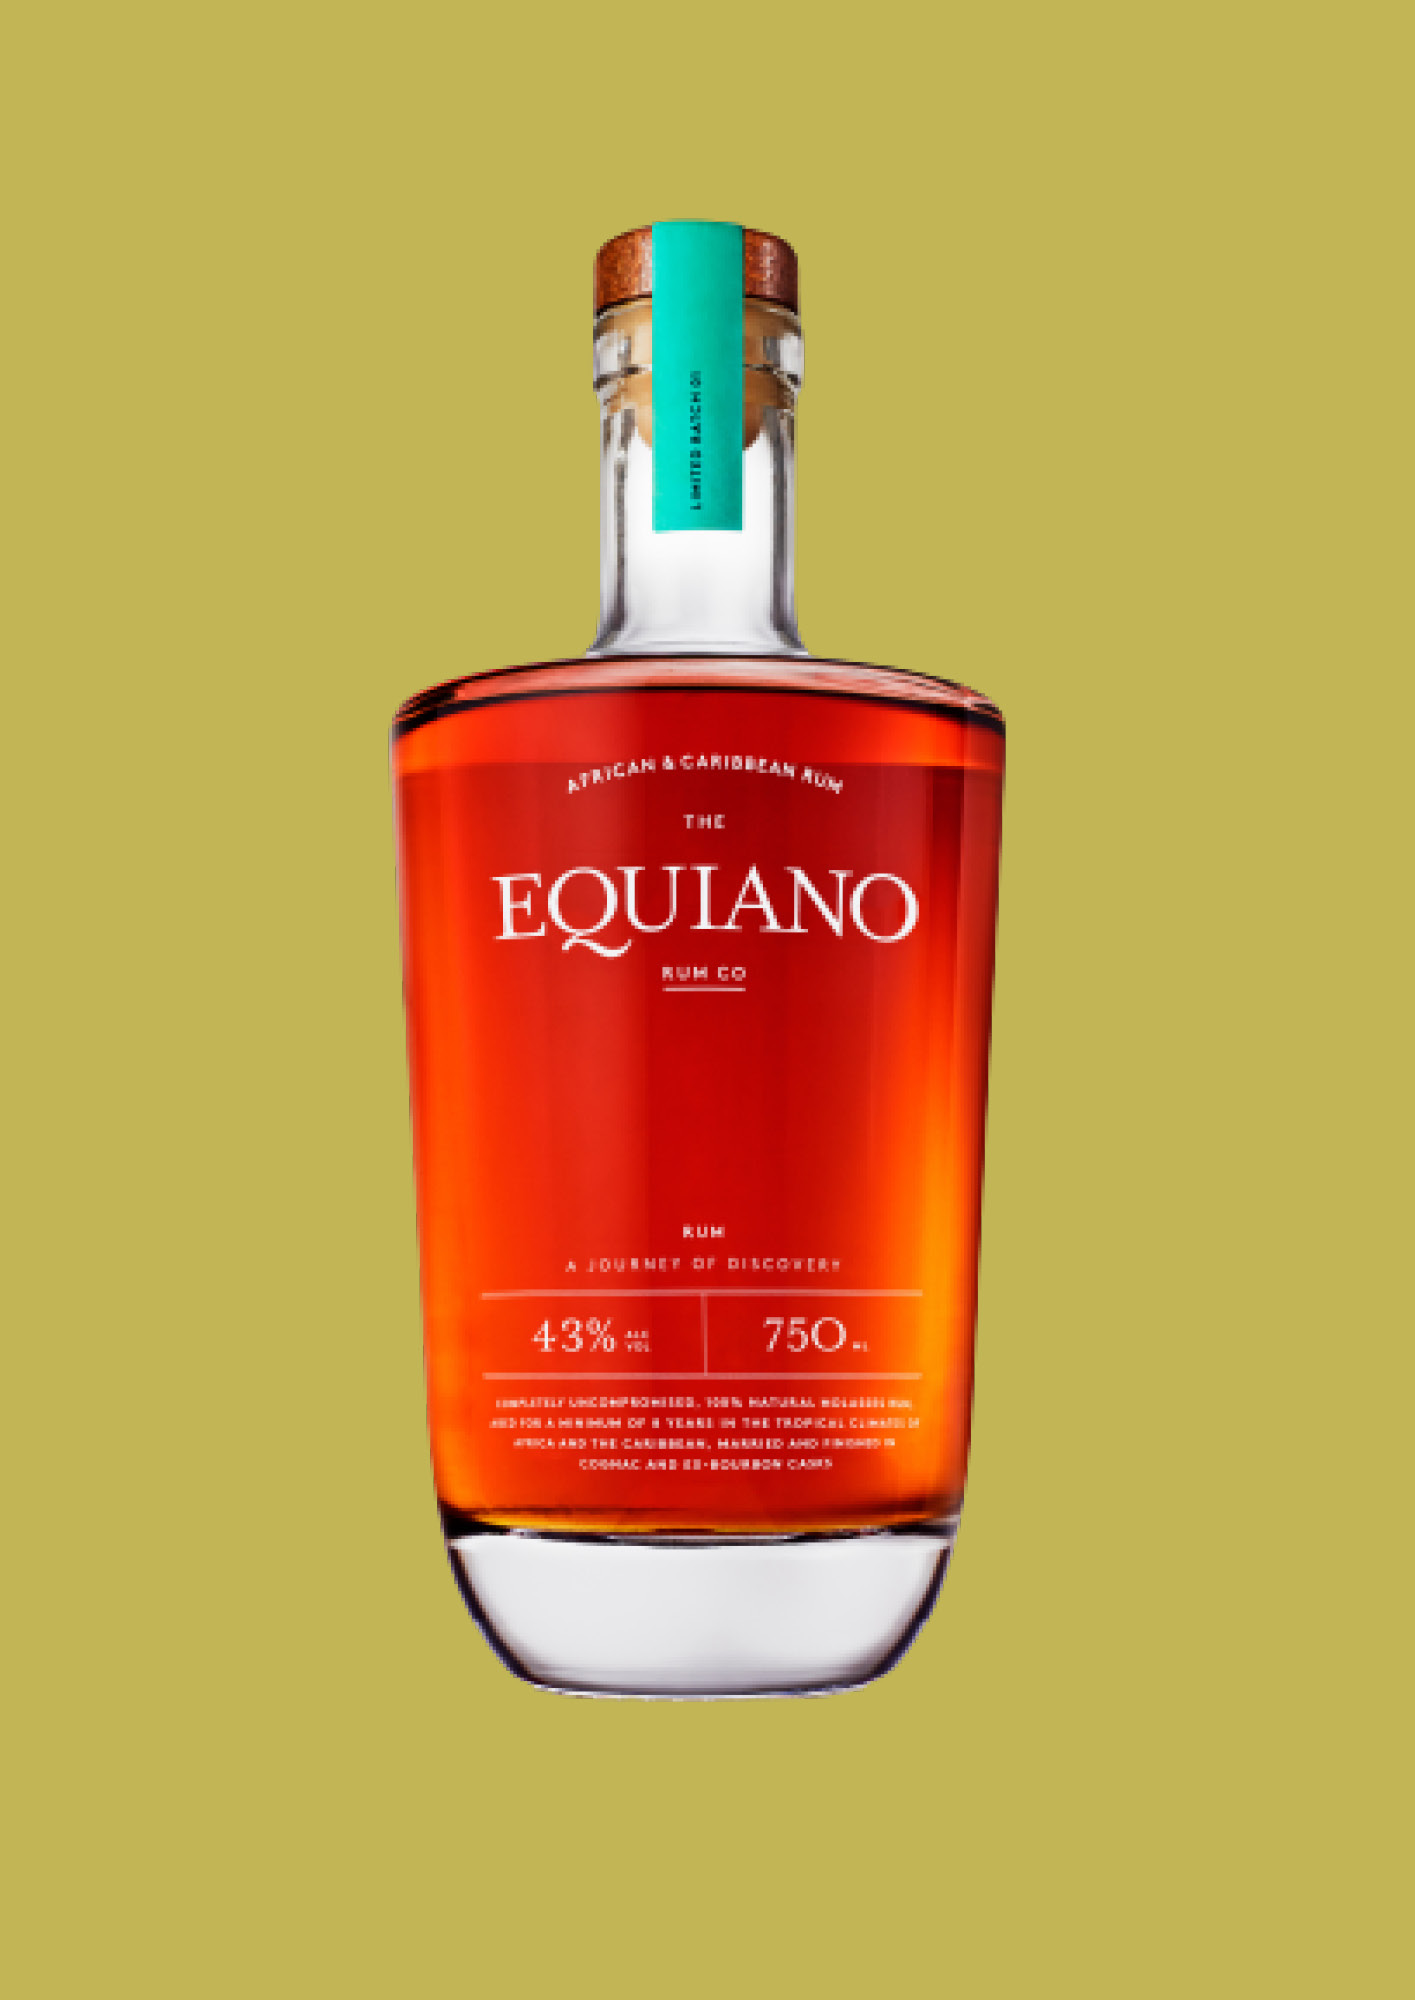 Equiano is a unique blend of African and Caribbean rum expertise